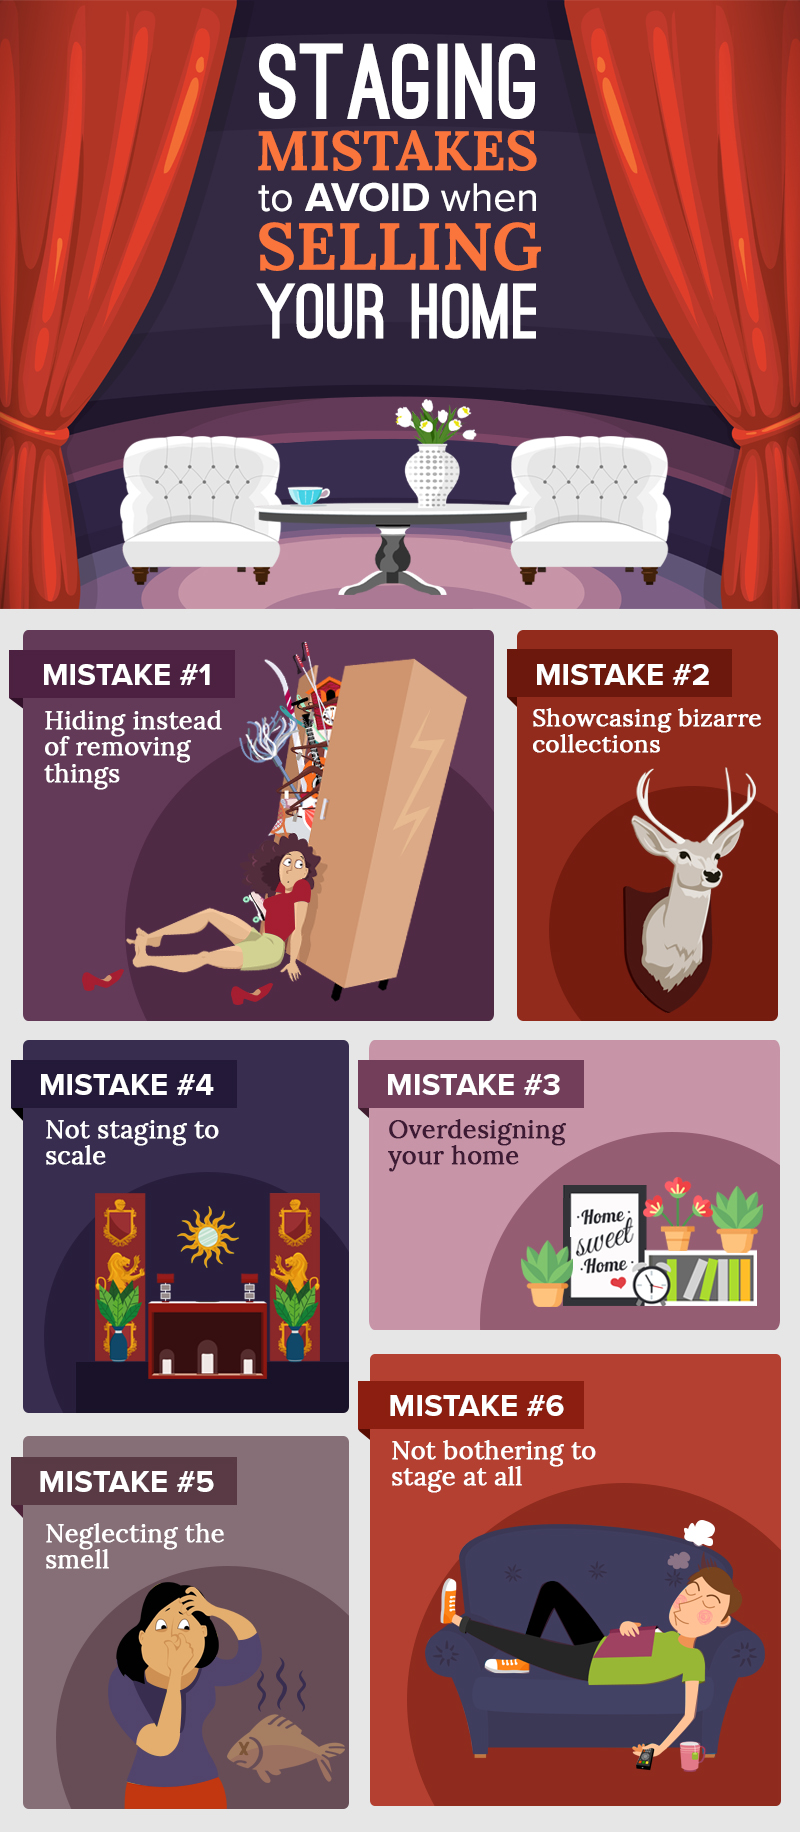 6 Staging Mistakes To Avoid When Selling Your Home